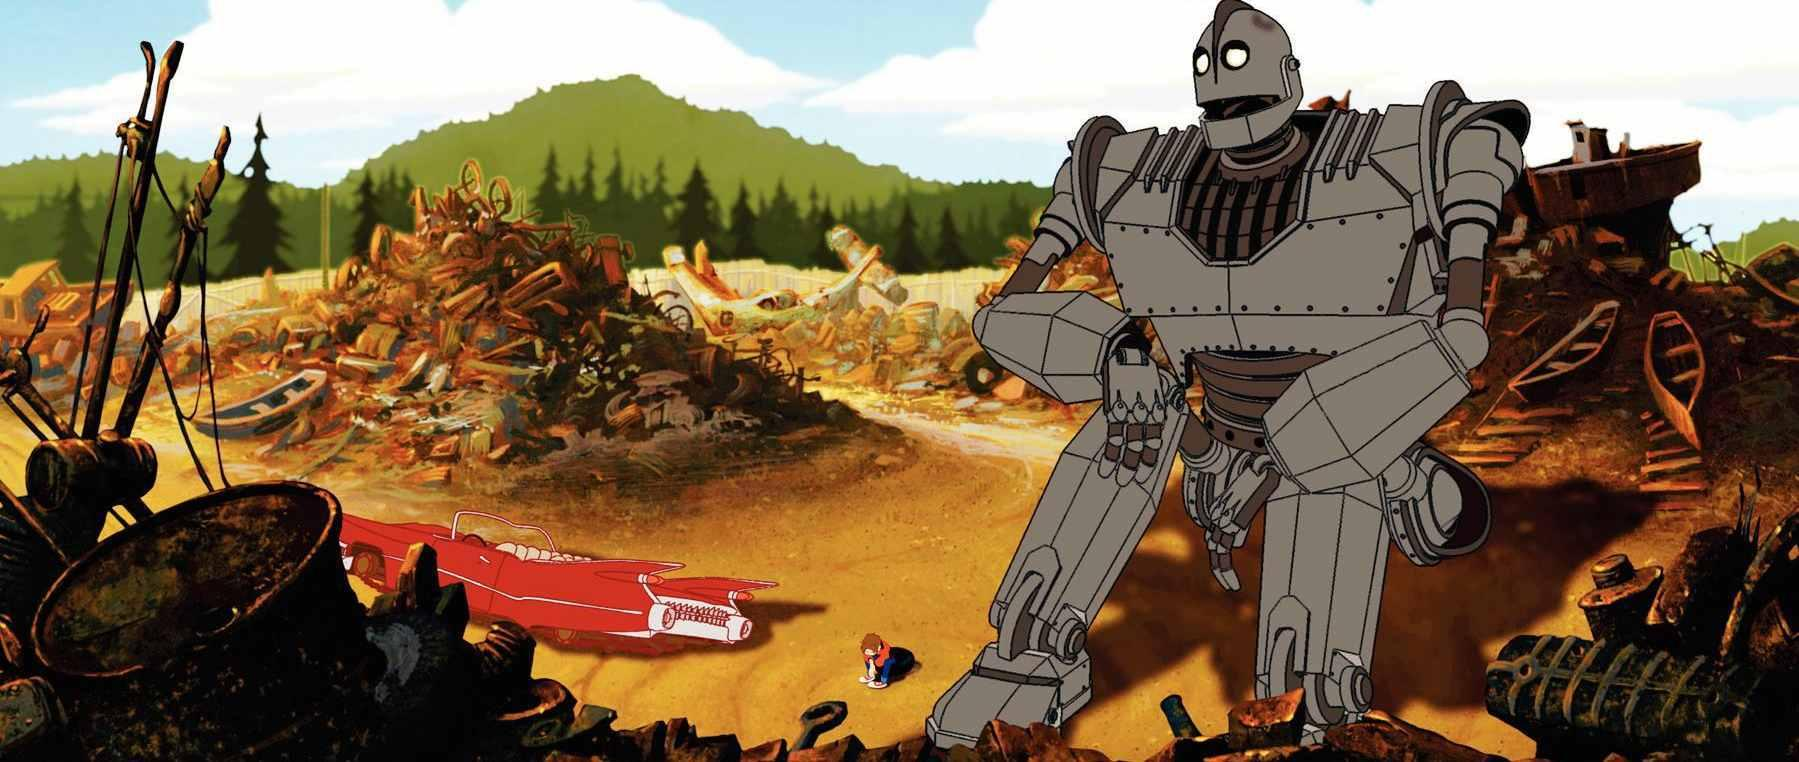 Lost In The Movie Wilderness Quot The Iron Giant Quot To The